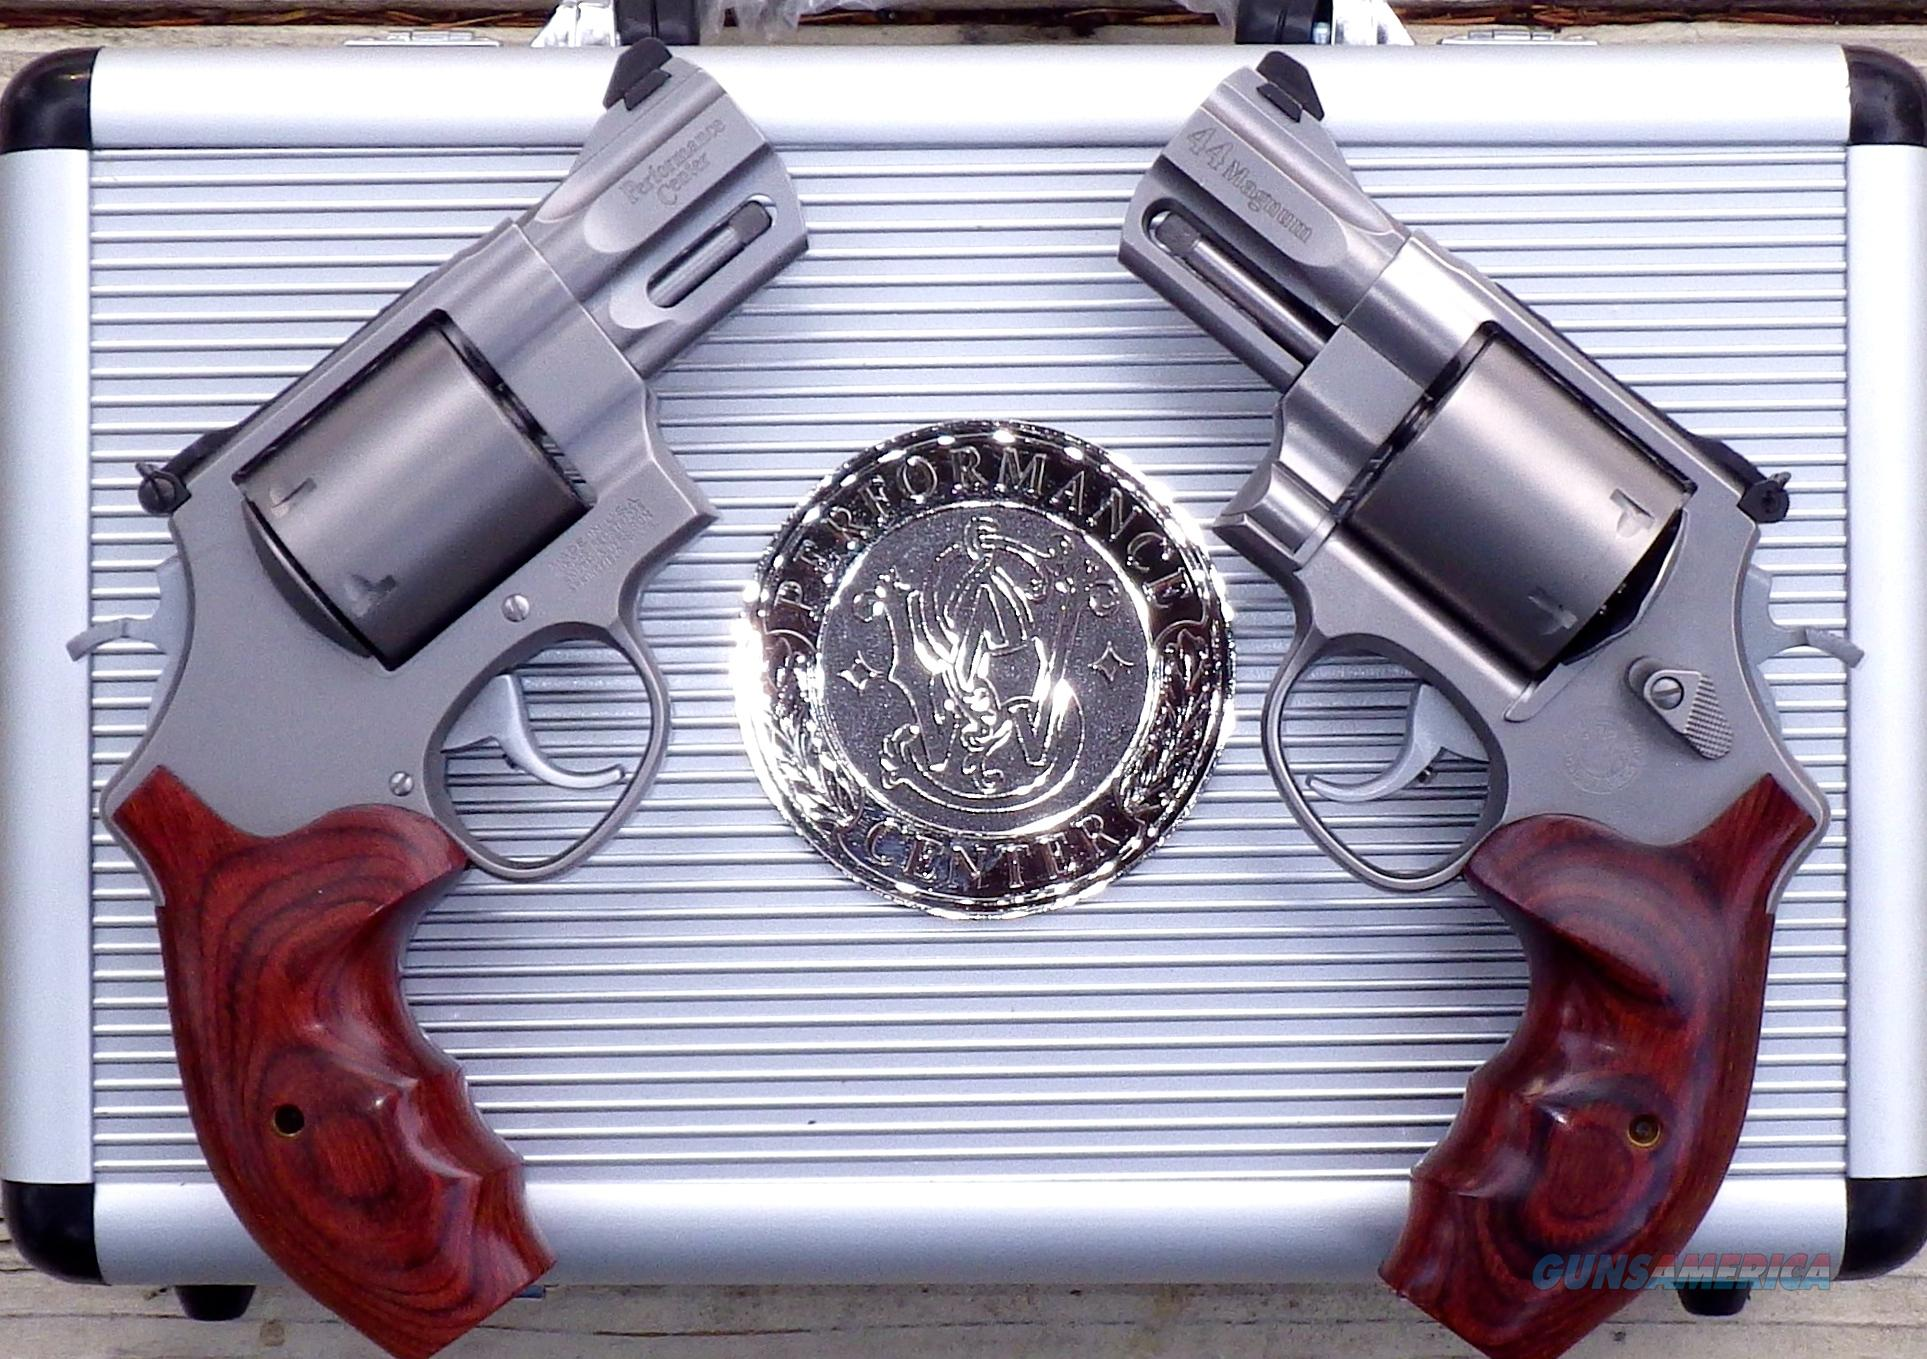 S&W 629 .44 Mag., Consecutive Serial Pair, 2 5/8, Light Hunter, Performance Center  Guns > Pistols > Smith & Wesson Revolvers > Performance Center